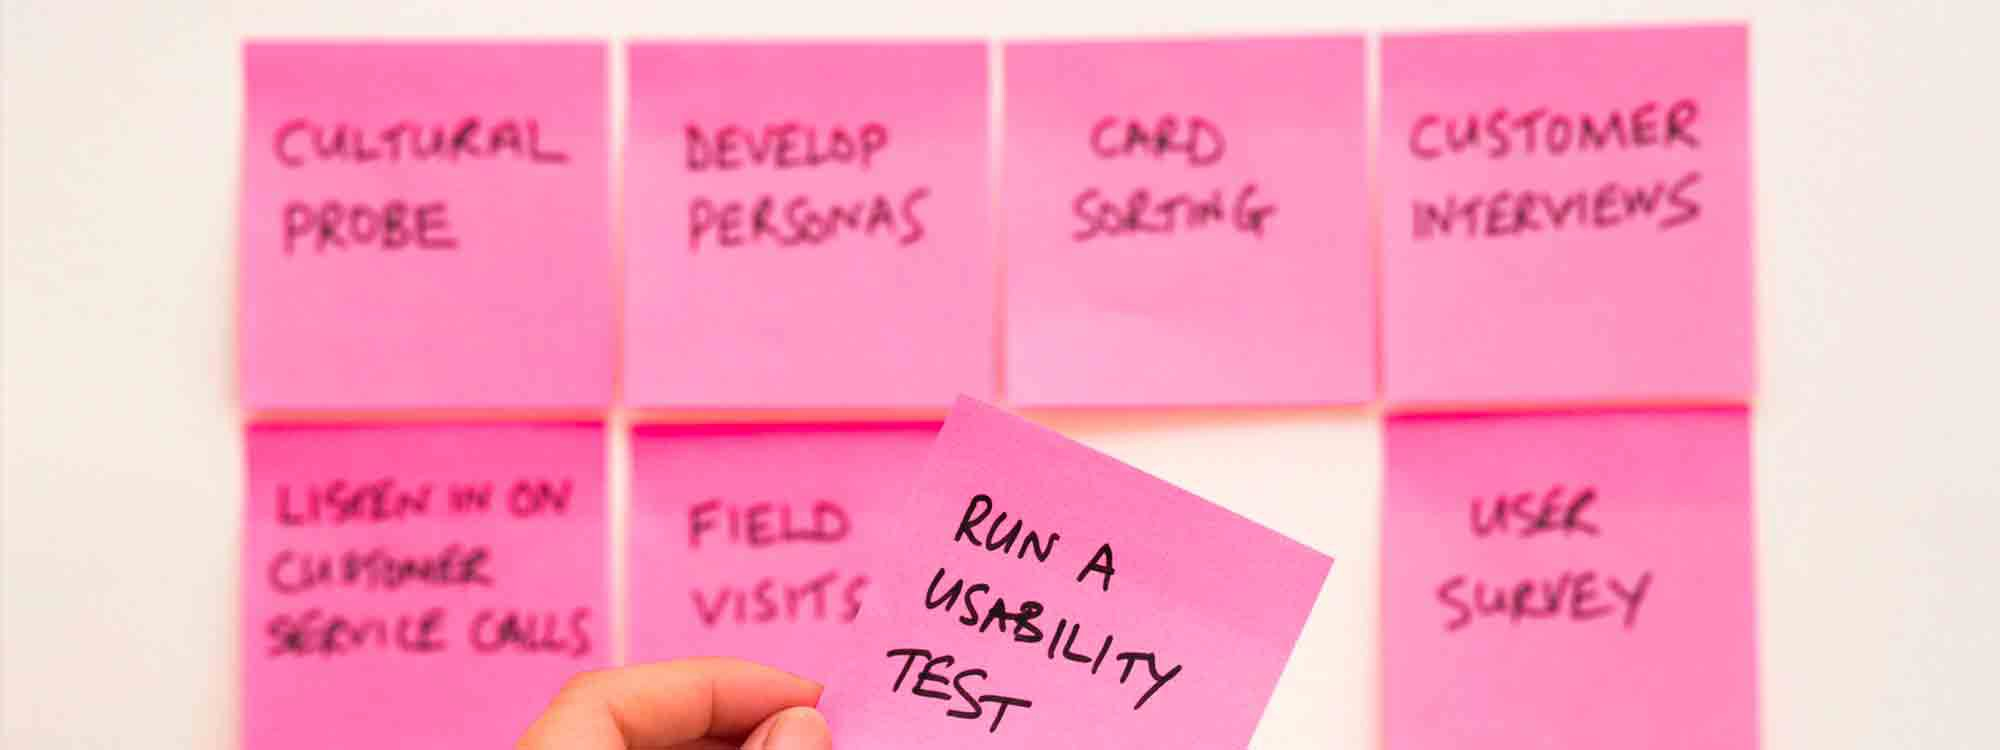 Why You Need More UX Research - Proto io - Medium